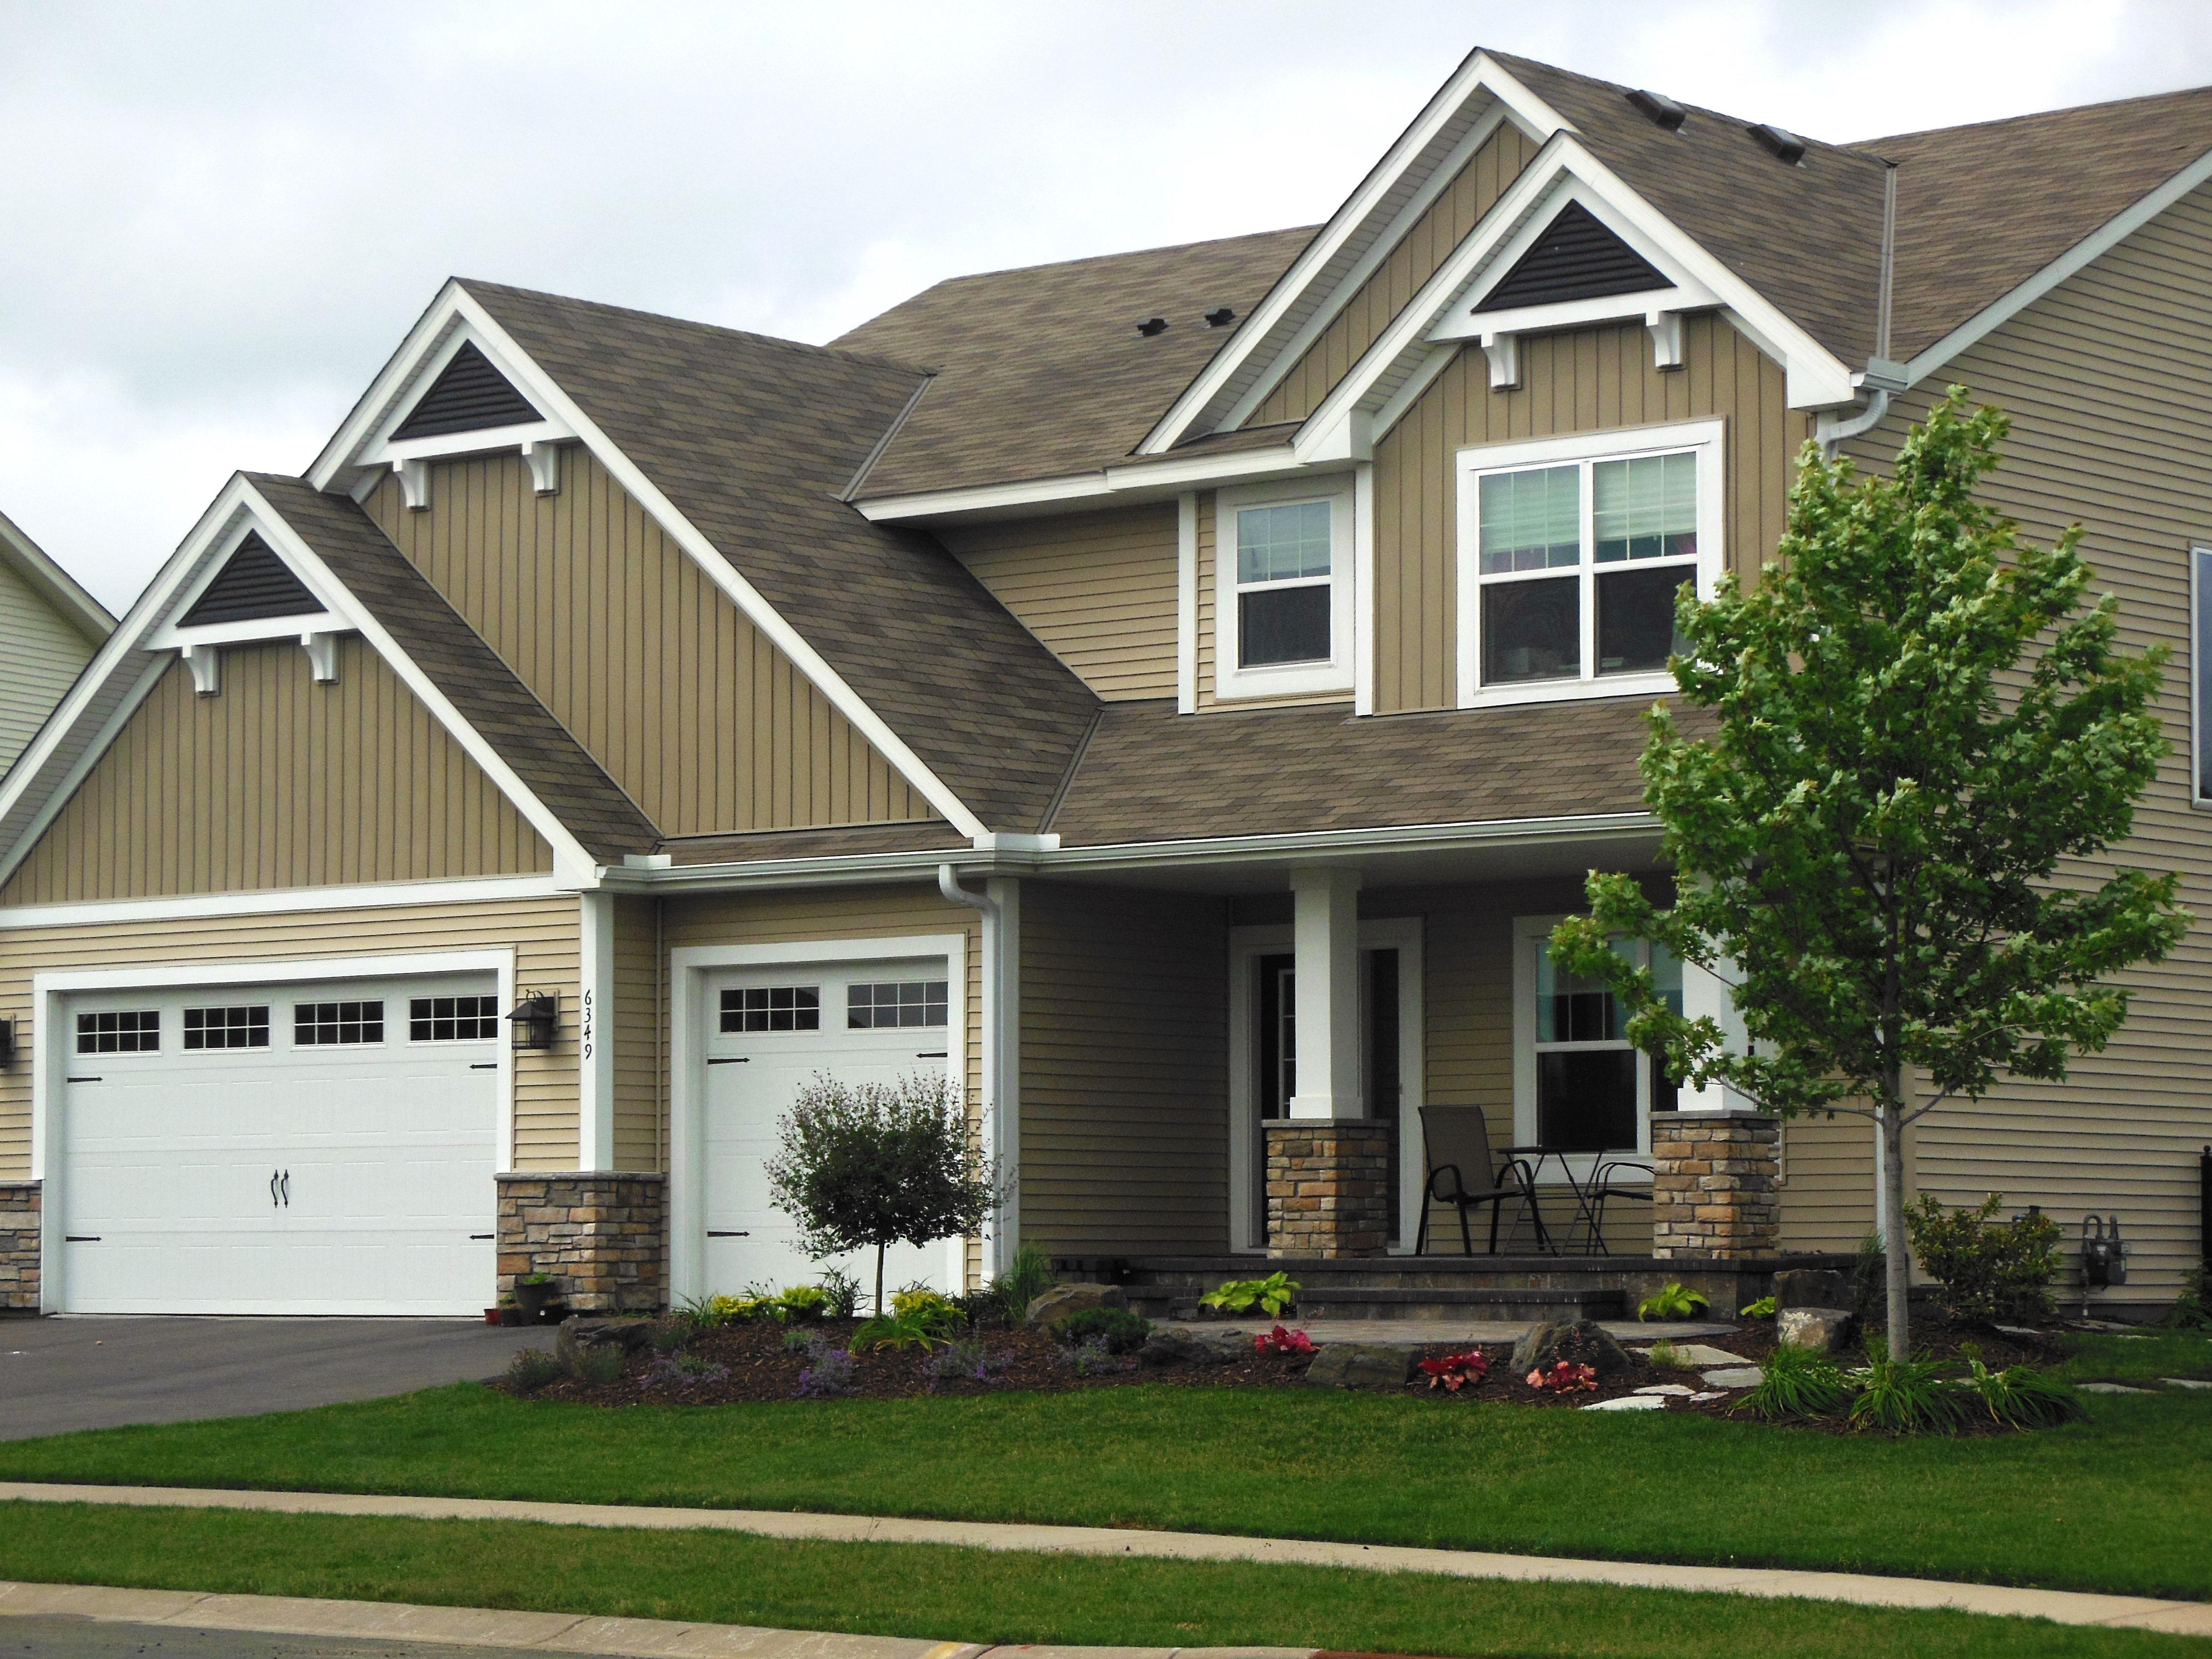 Best roofing siding contractors of billings coupons near for Best home builders near me